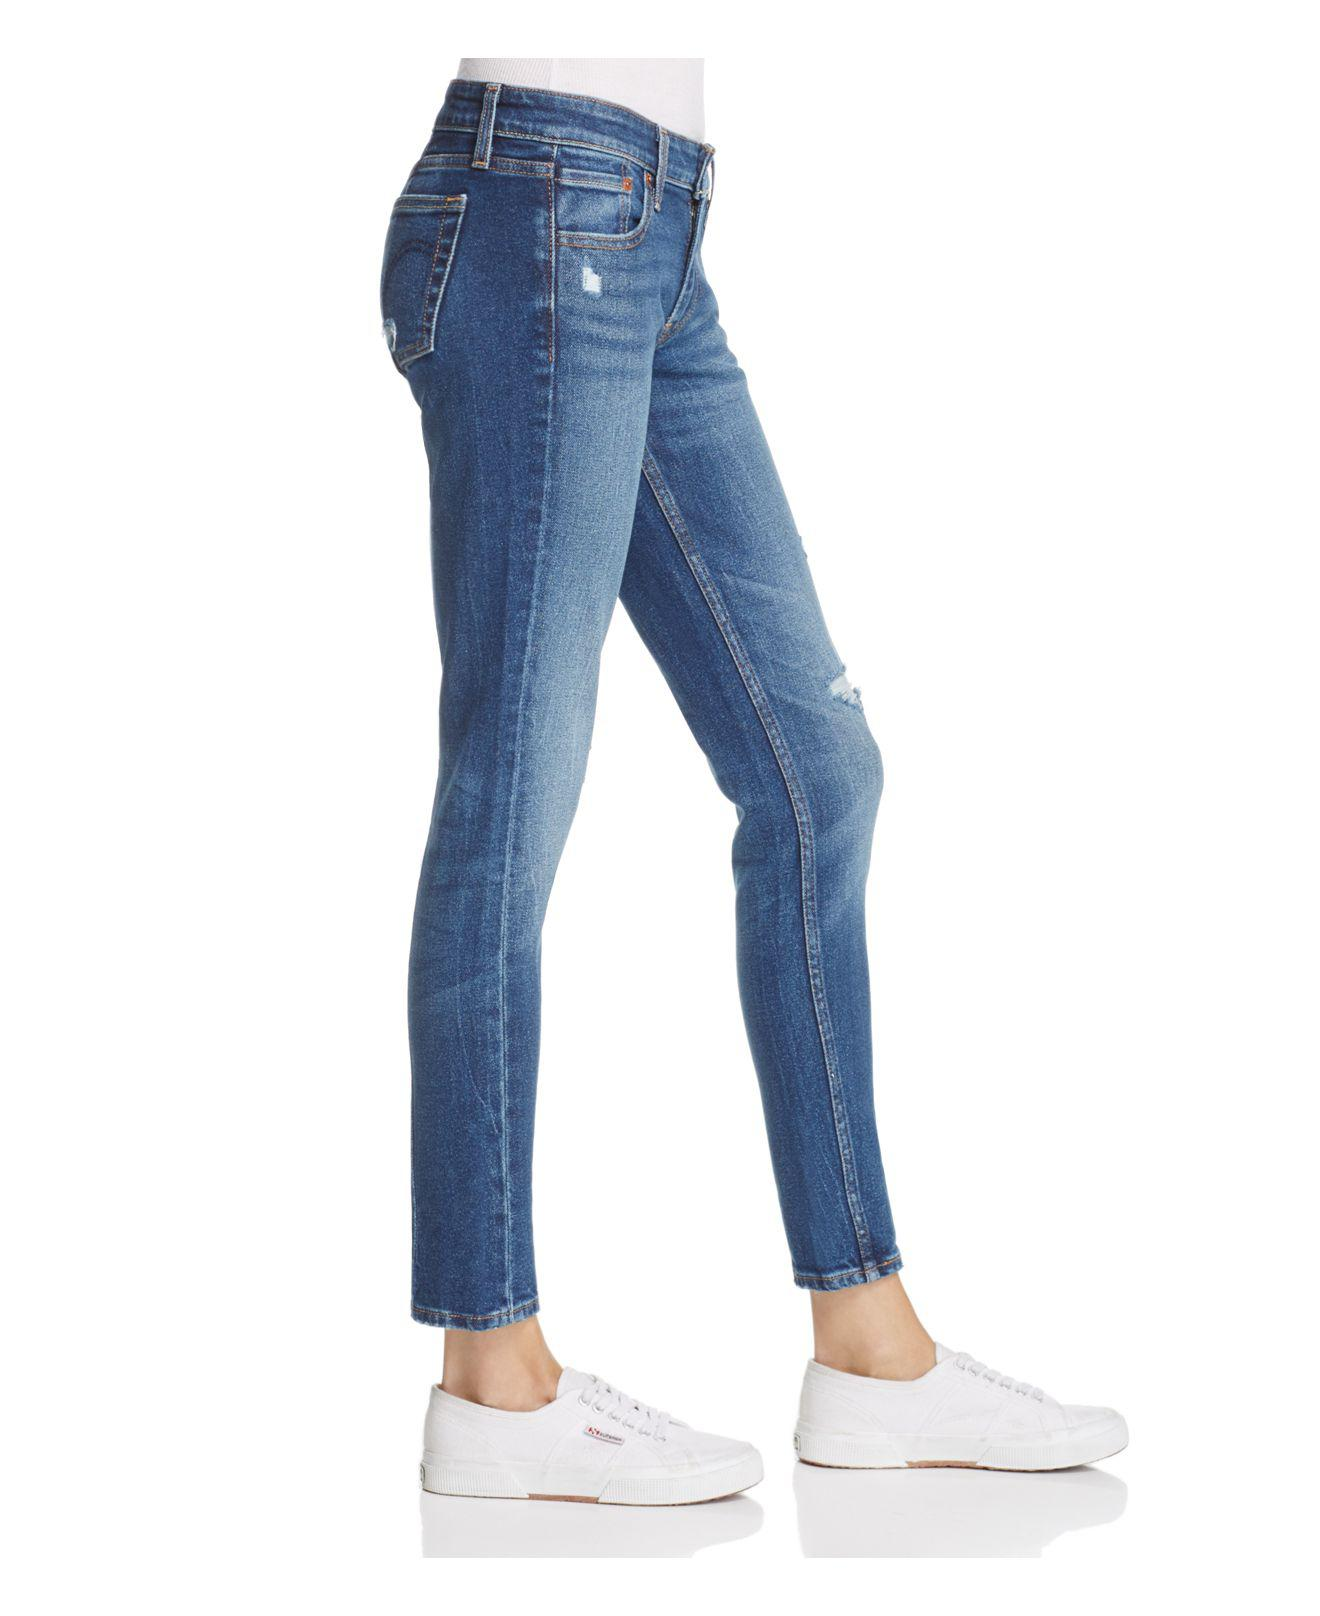 3ef483b31c3 Lyst - Levi s 711® Distressed Skinny Jeans In Mix Tape in Blue